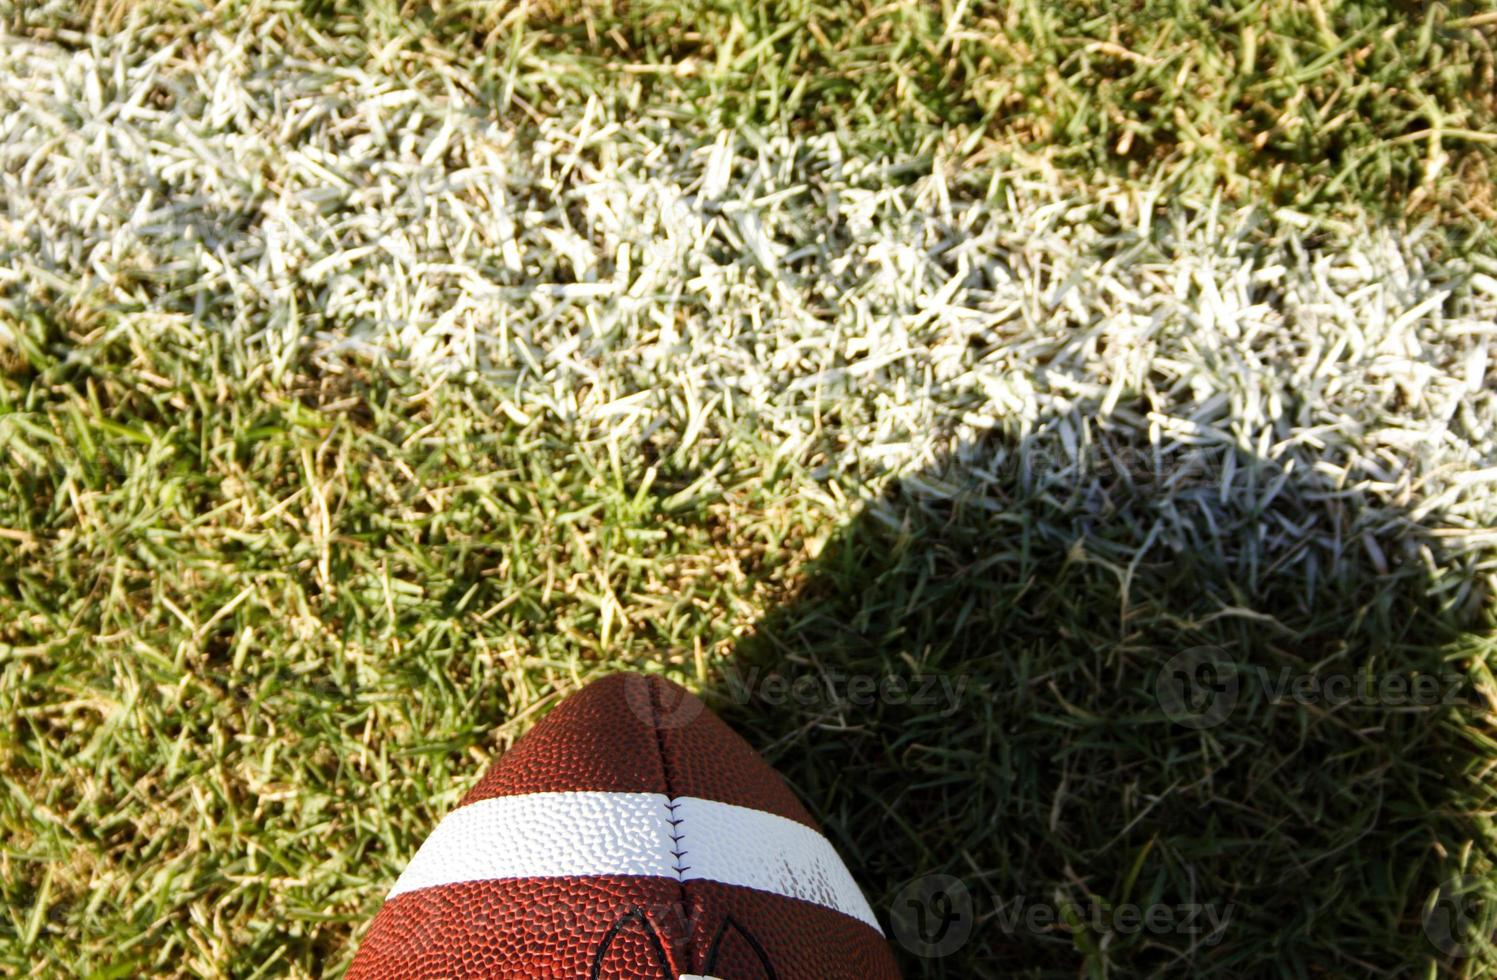 Fourth down and goal photo